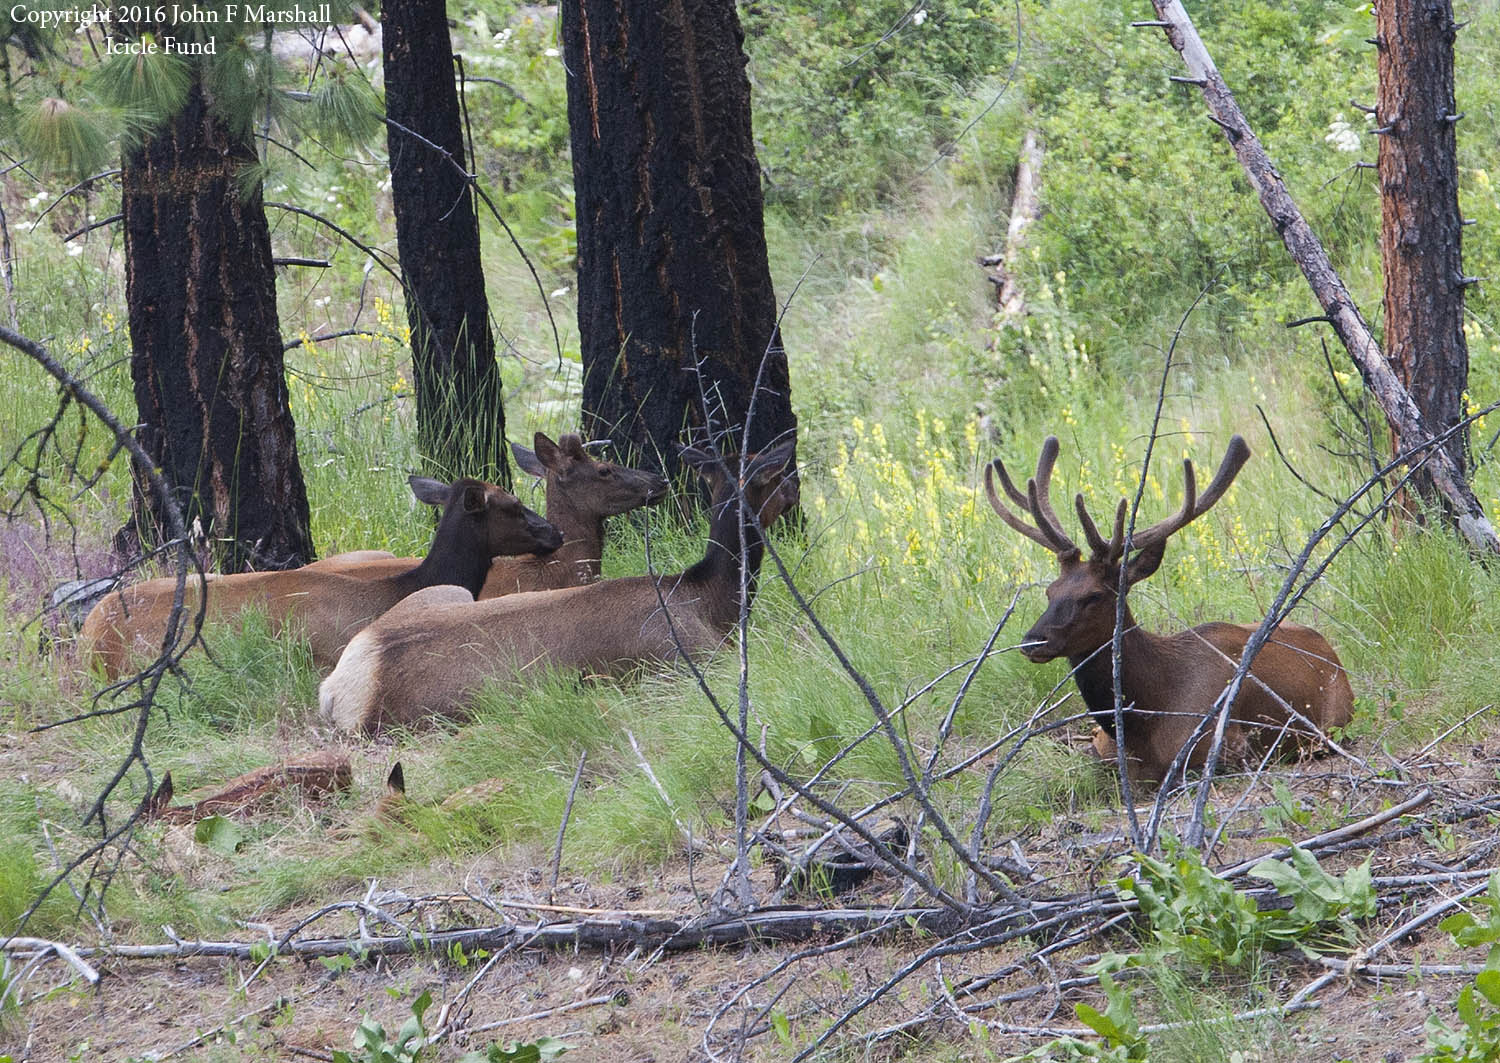 A bull elk in velvet rests among yearlings, and two calves near Boundary Butte off of Blewett Pass Highway on the Okanogan-Wenatchee National Forest, Washington. I did a long sneak on my belly to get this picture.